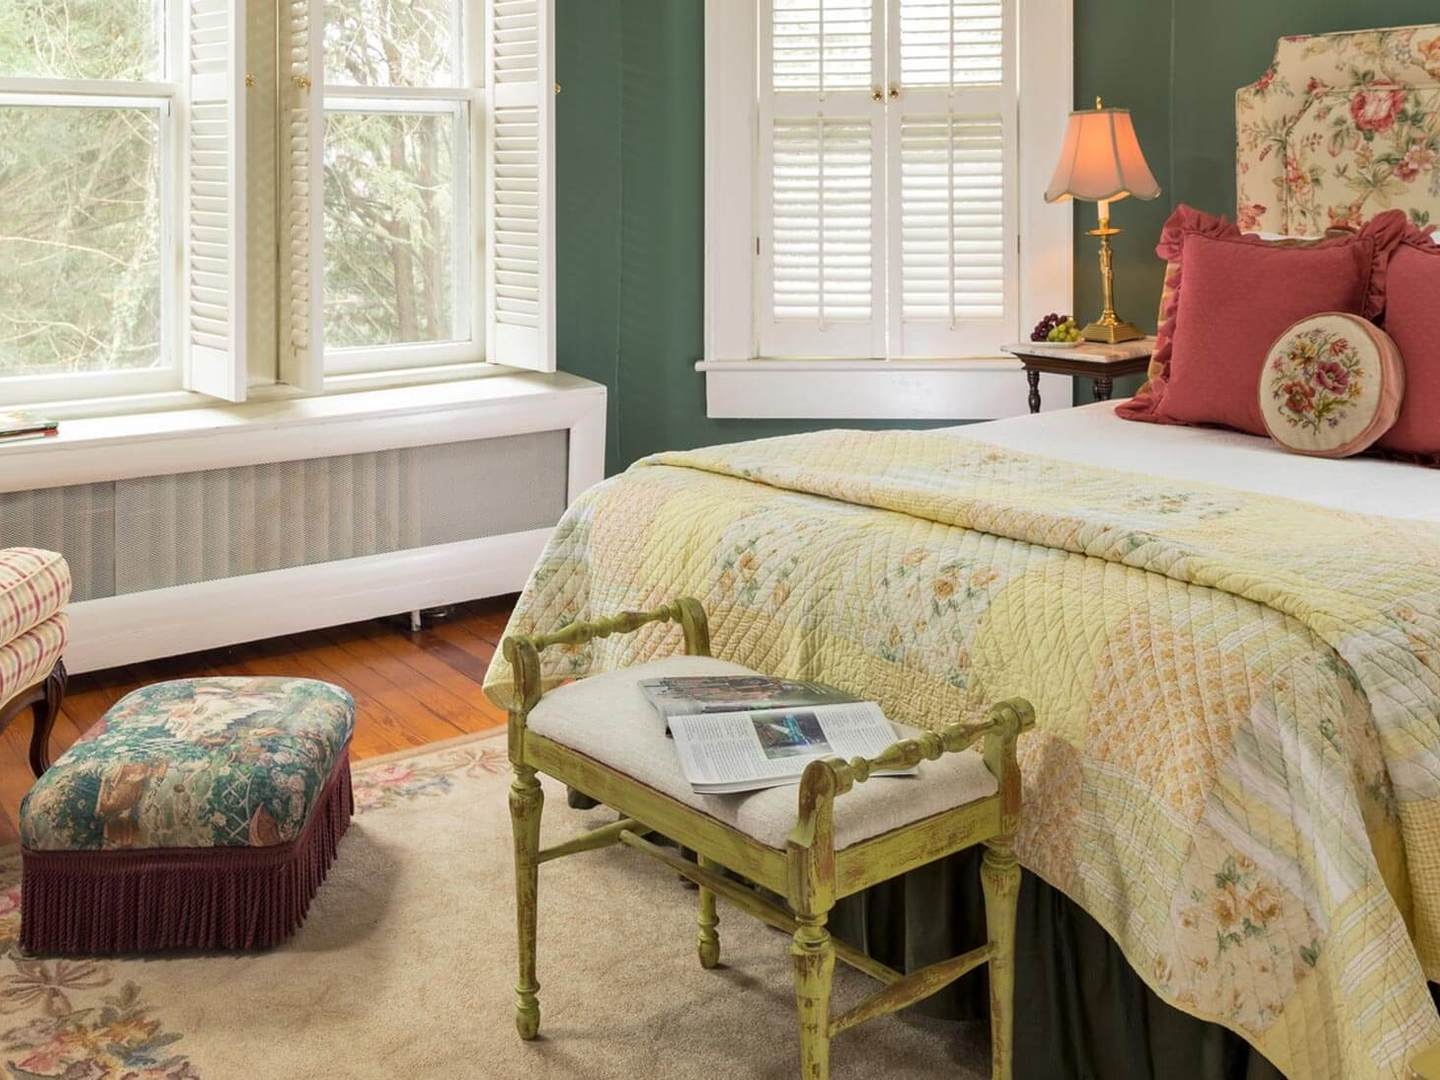 A living room with a bed and a window at The Yellow House Bed and Breakfast.